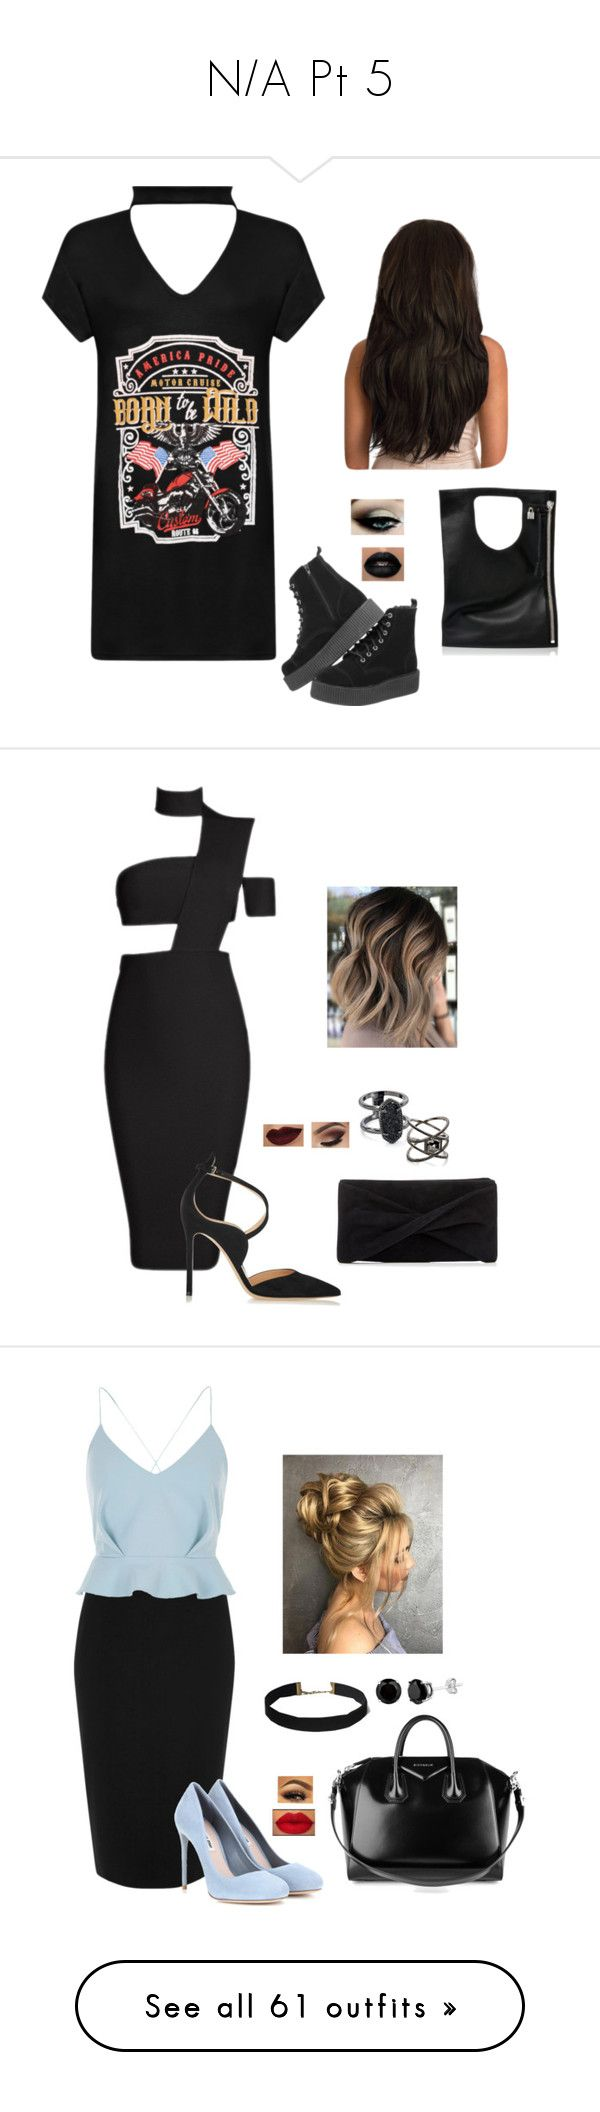 """""""N/A Pt 5"""" by terra-wendy on Polyvore featuring WearAll, Alix, Gianvito Rossi, Reiss, Kendra Scott, Eva Fehren, River Island, Miu Miu, Givenchy and Lord & Taylor"""